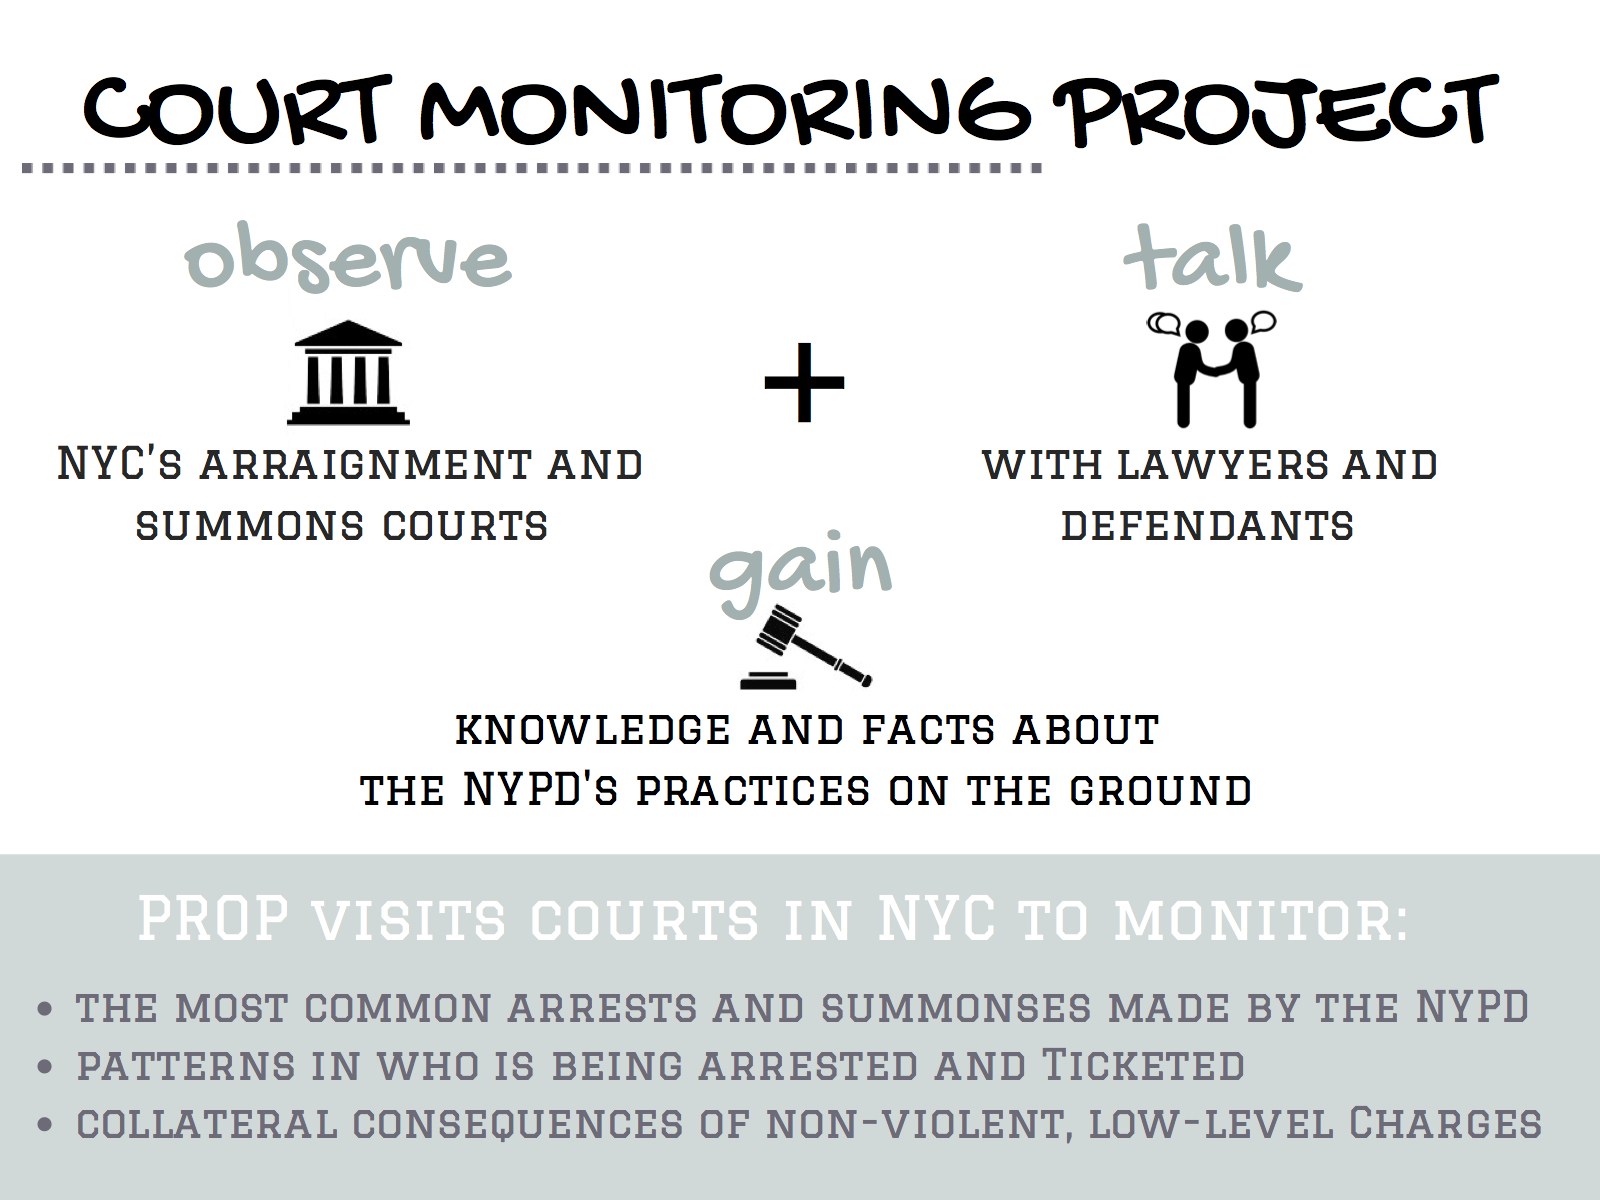 The Court Monitoring Project